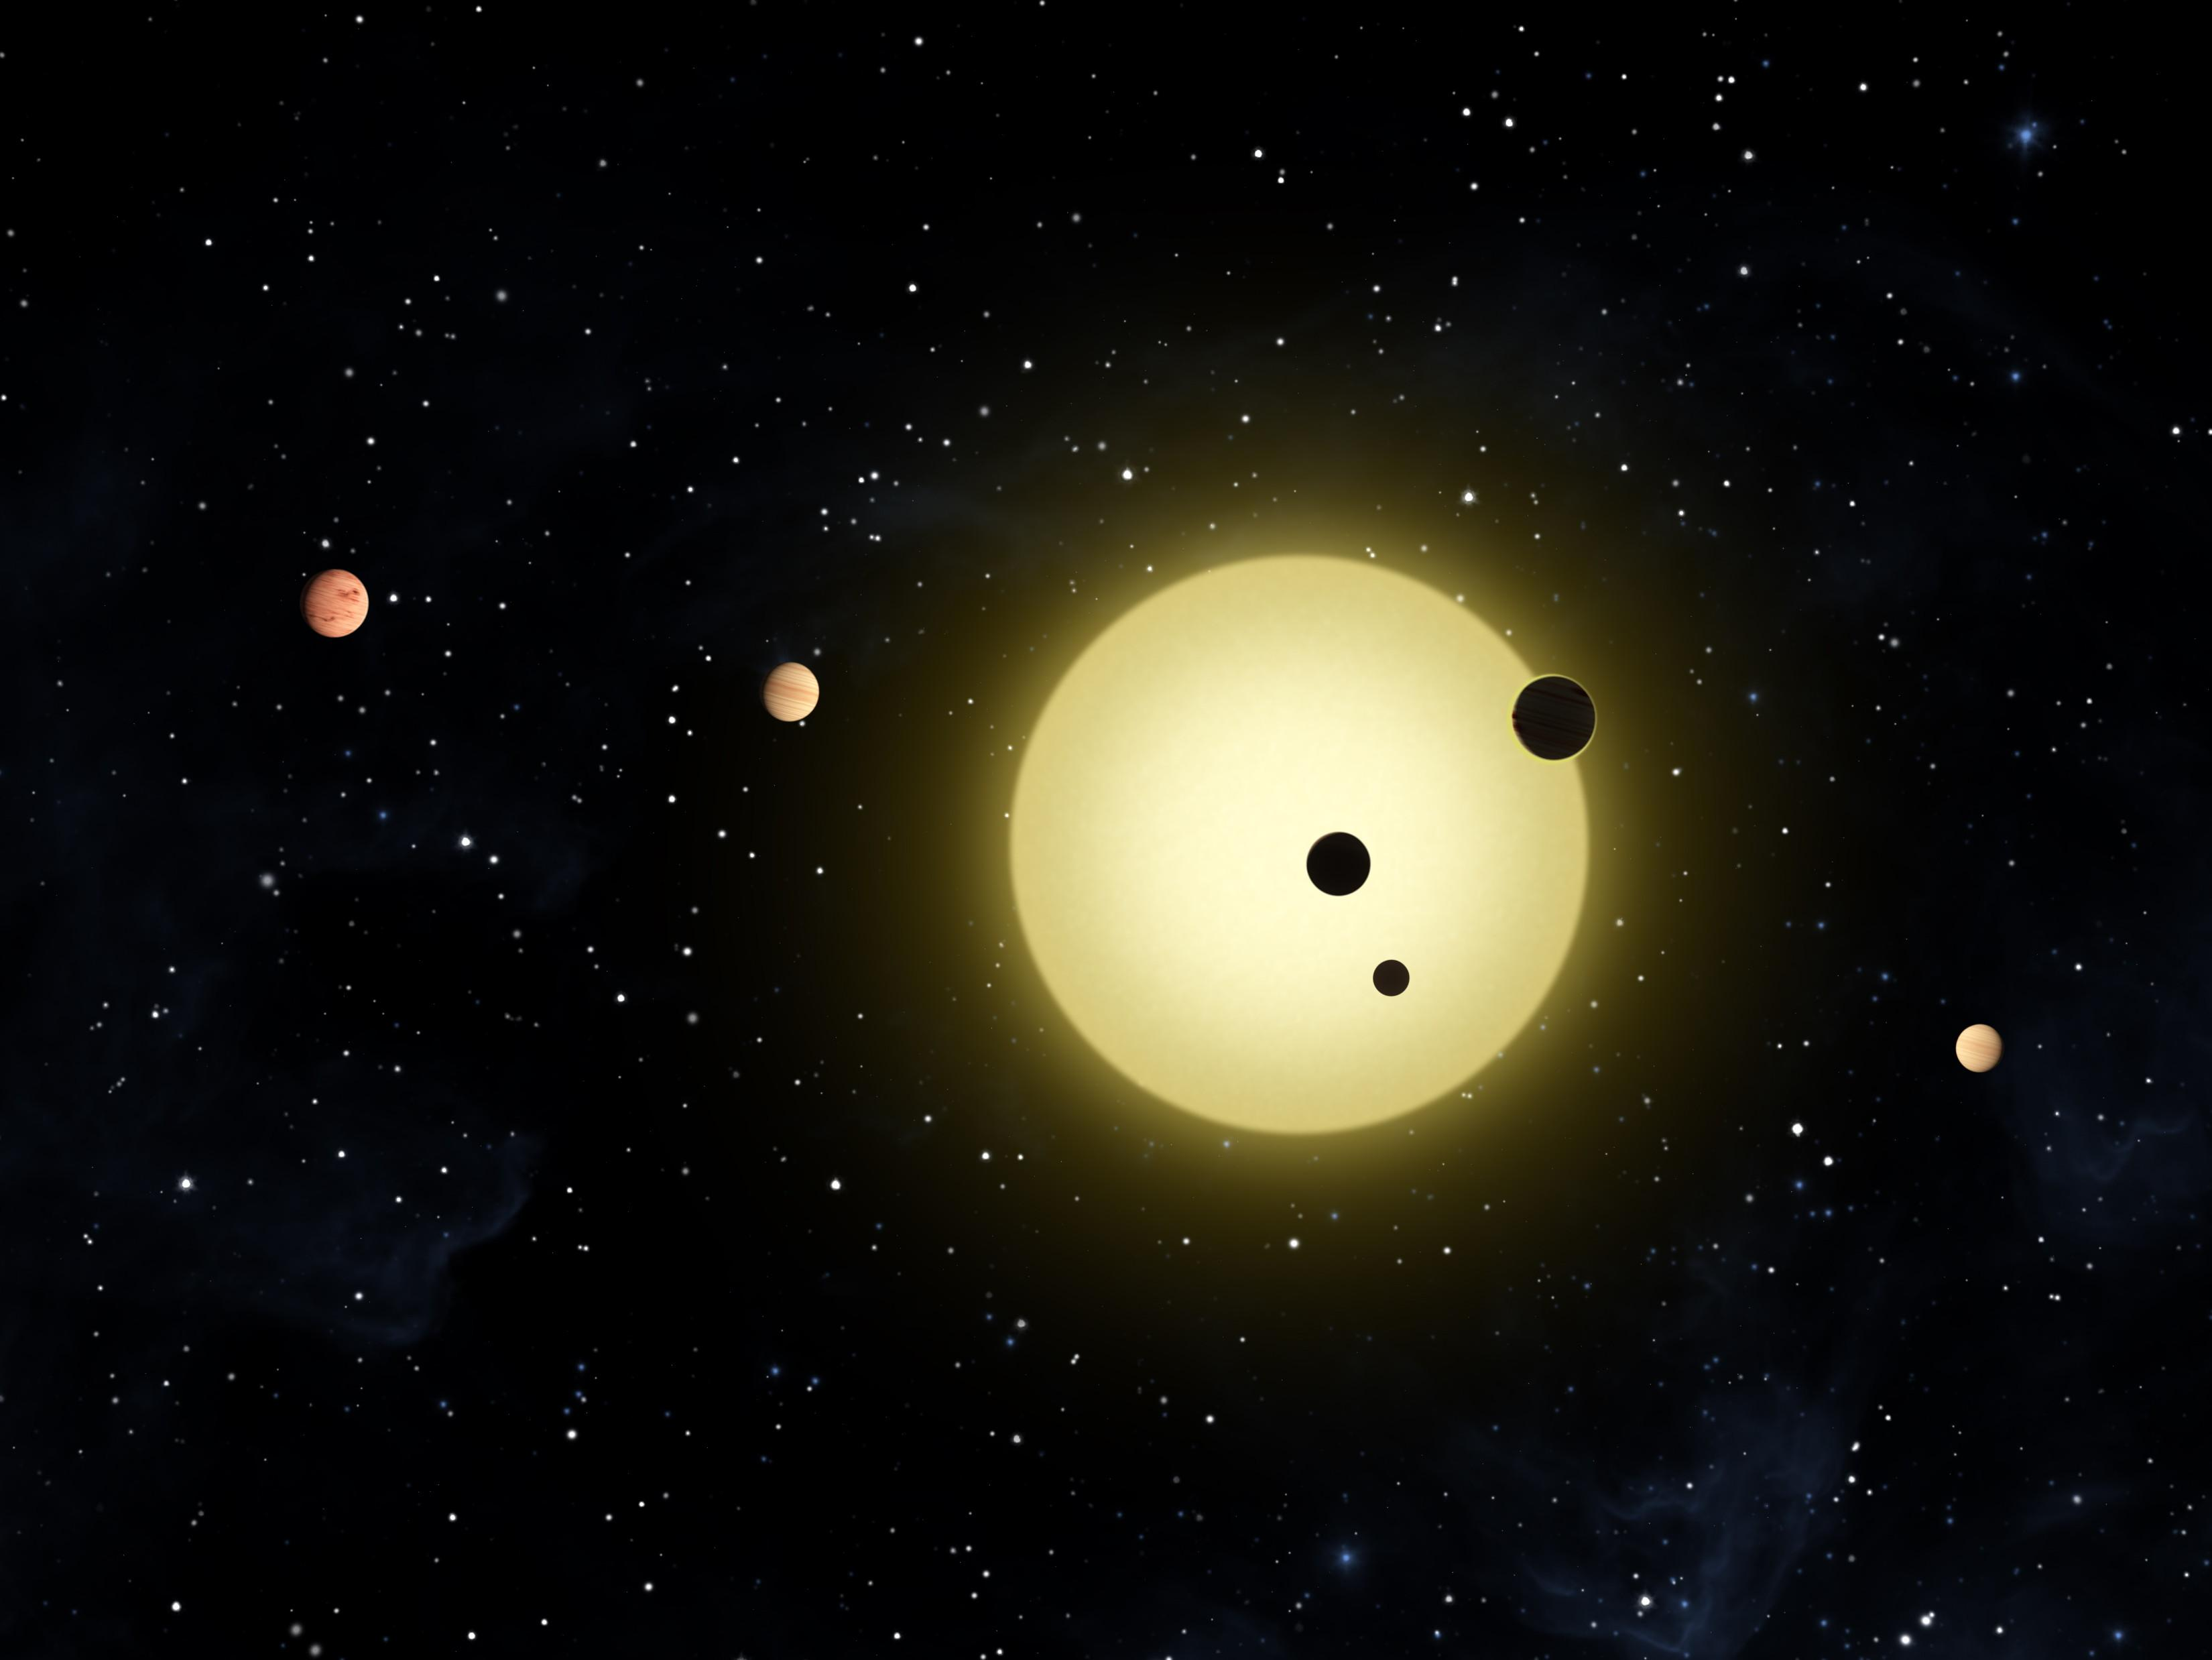 planets around a star - photo #14